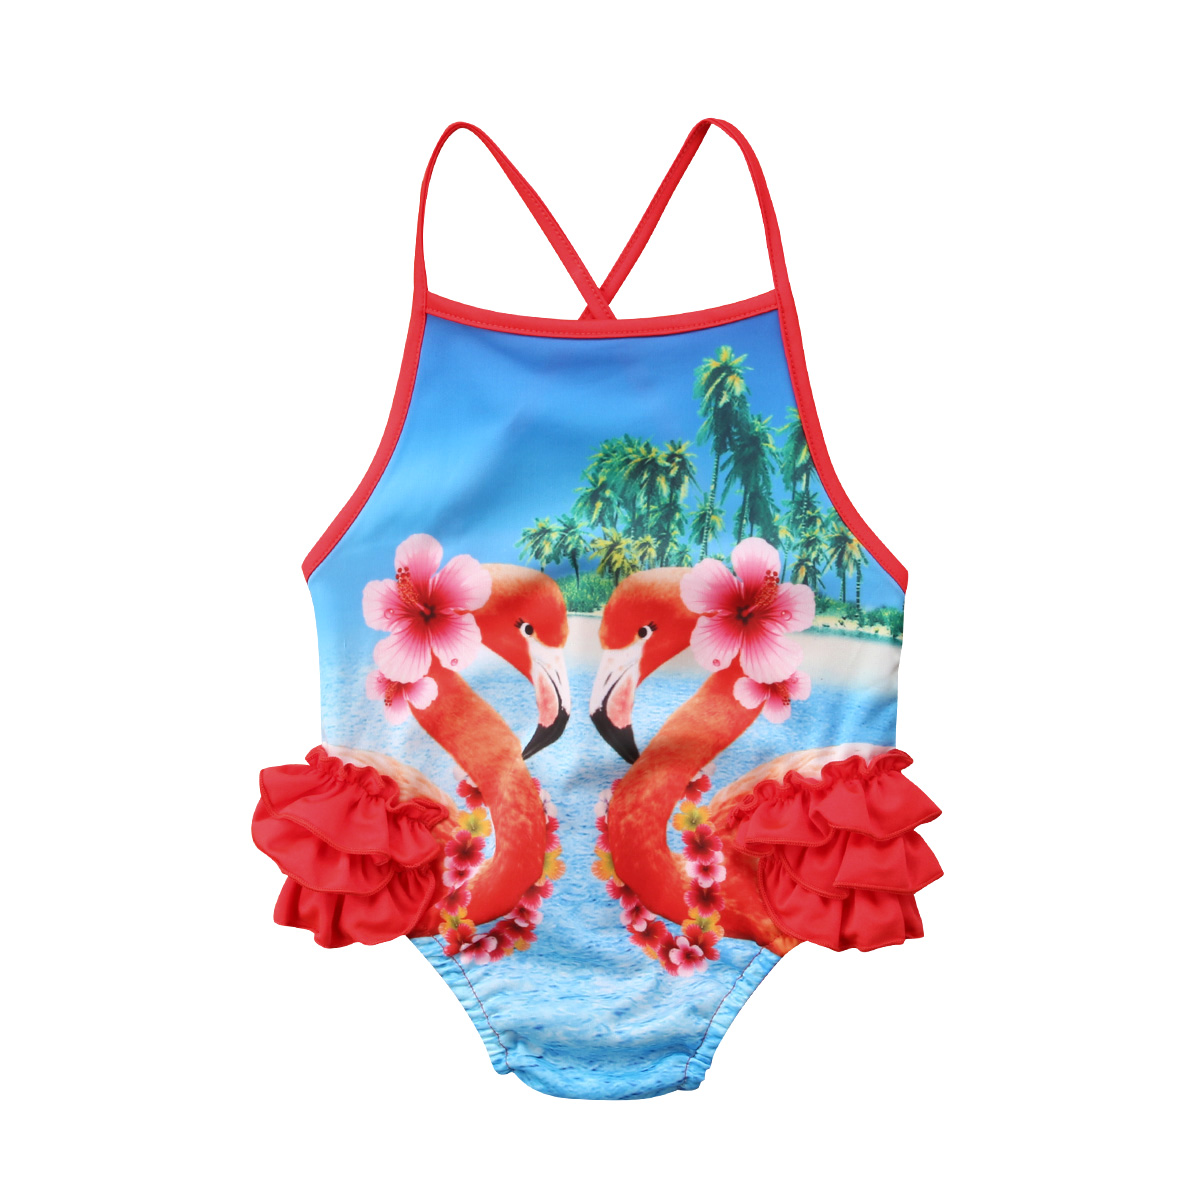 Baby Girls One Piece Swimsuit Floral Swimwear Bathing Suit Toddler Ruffle Sleeve Backless Beachwear